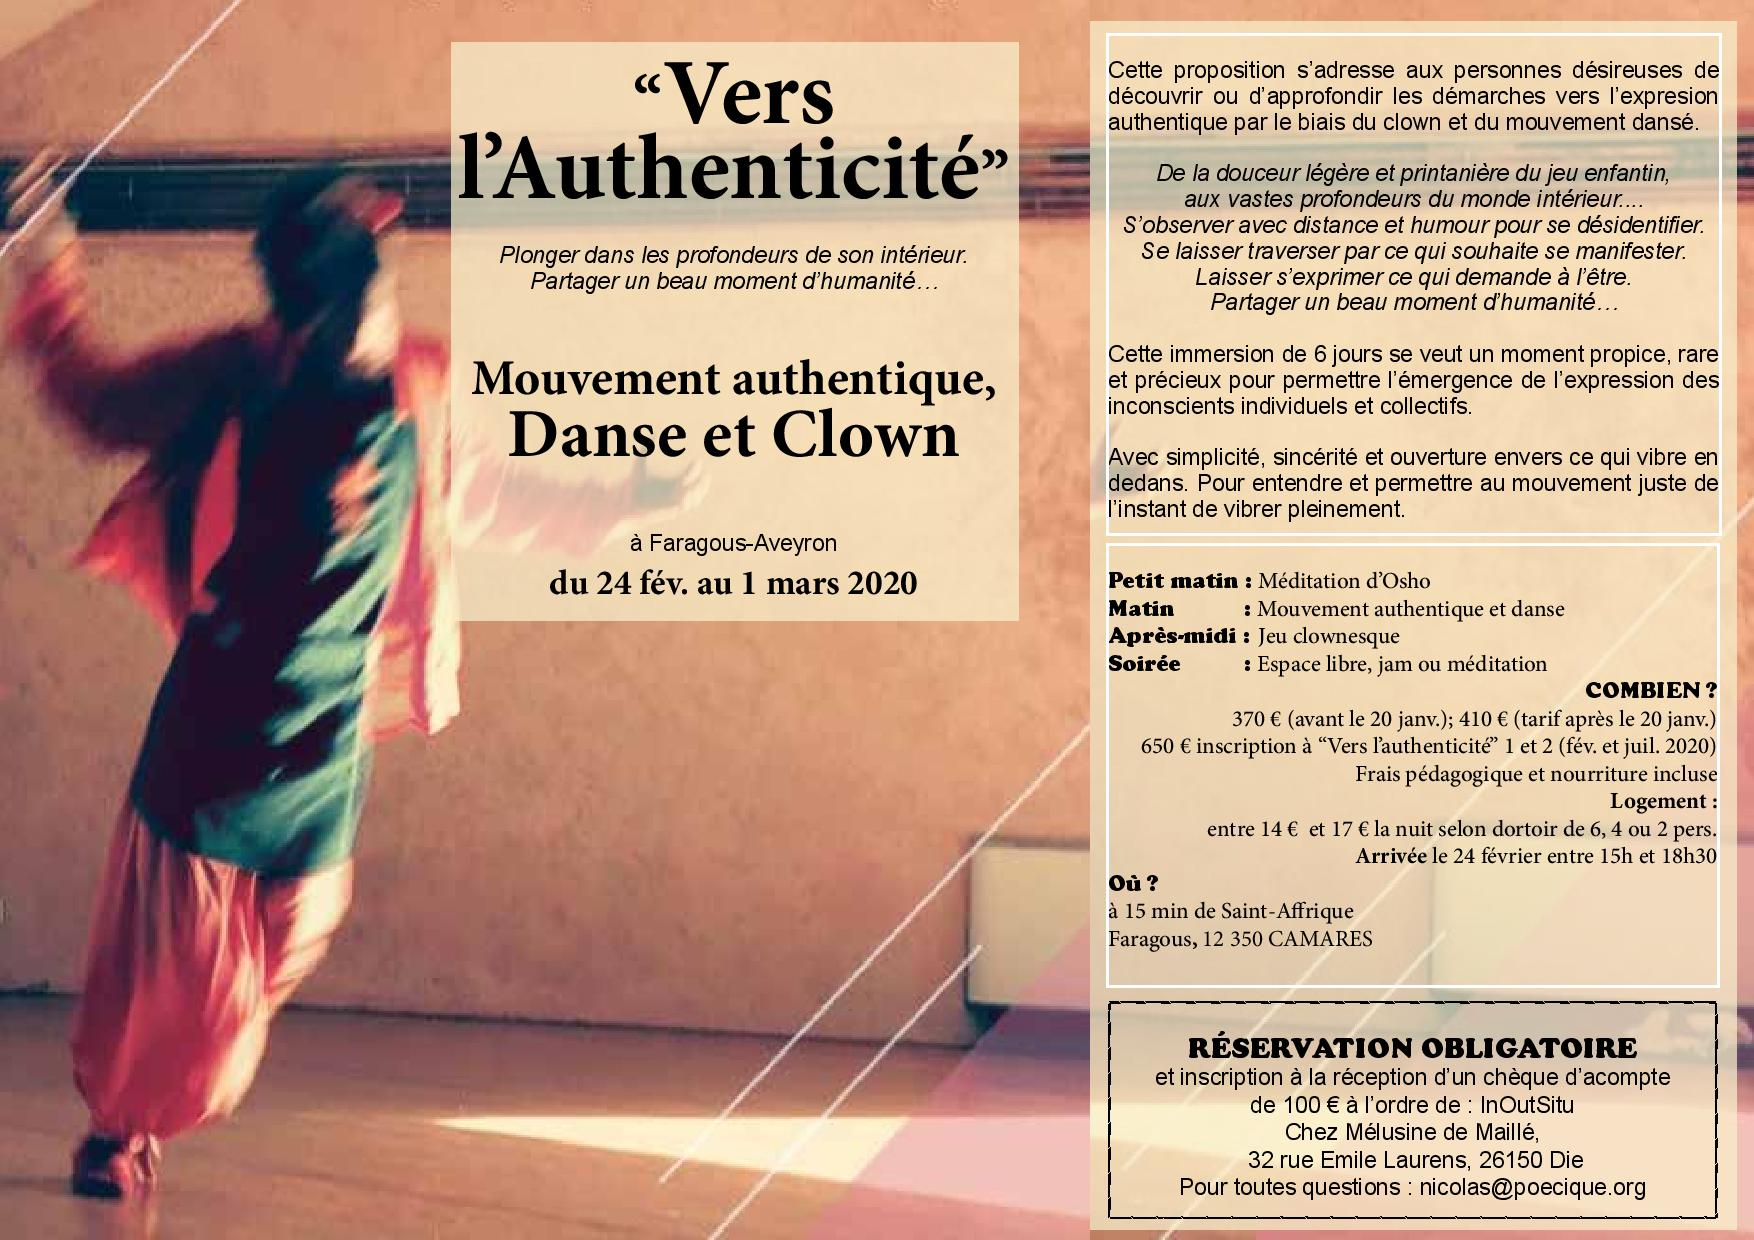 Vers l'authenticité! Clown et mouvement authentique